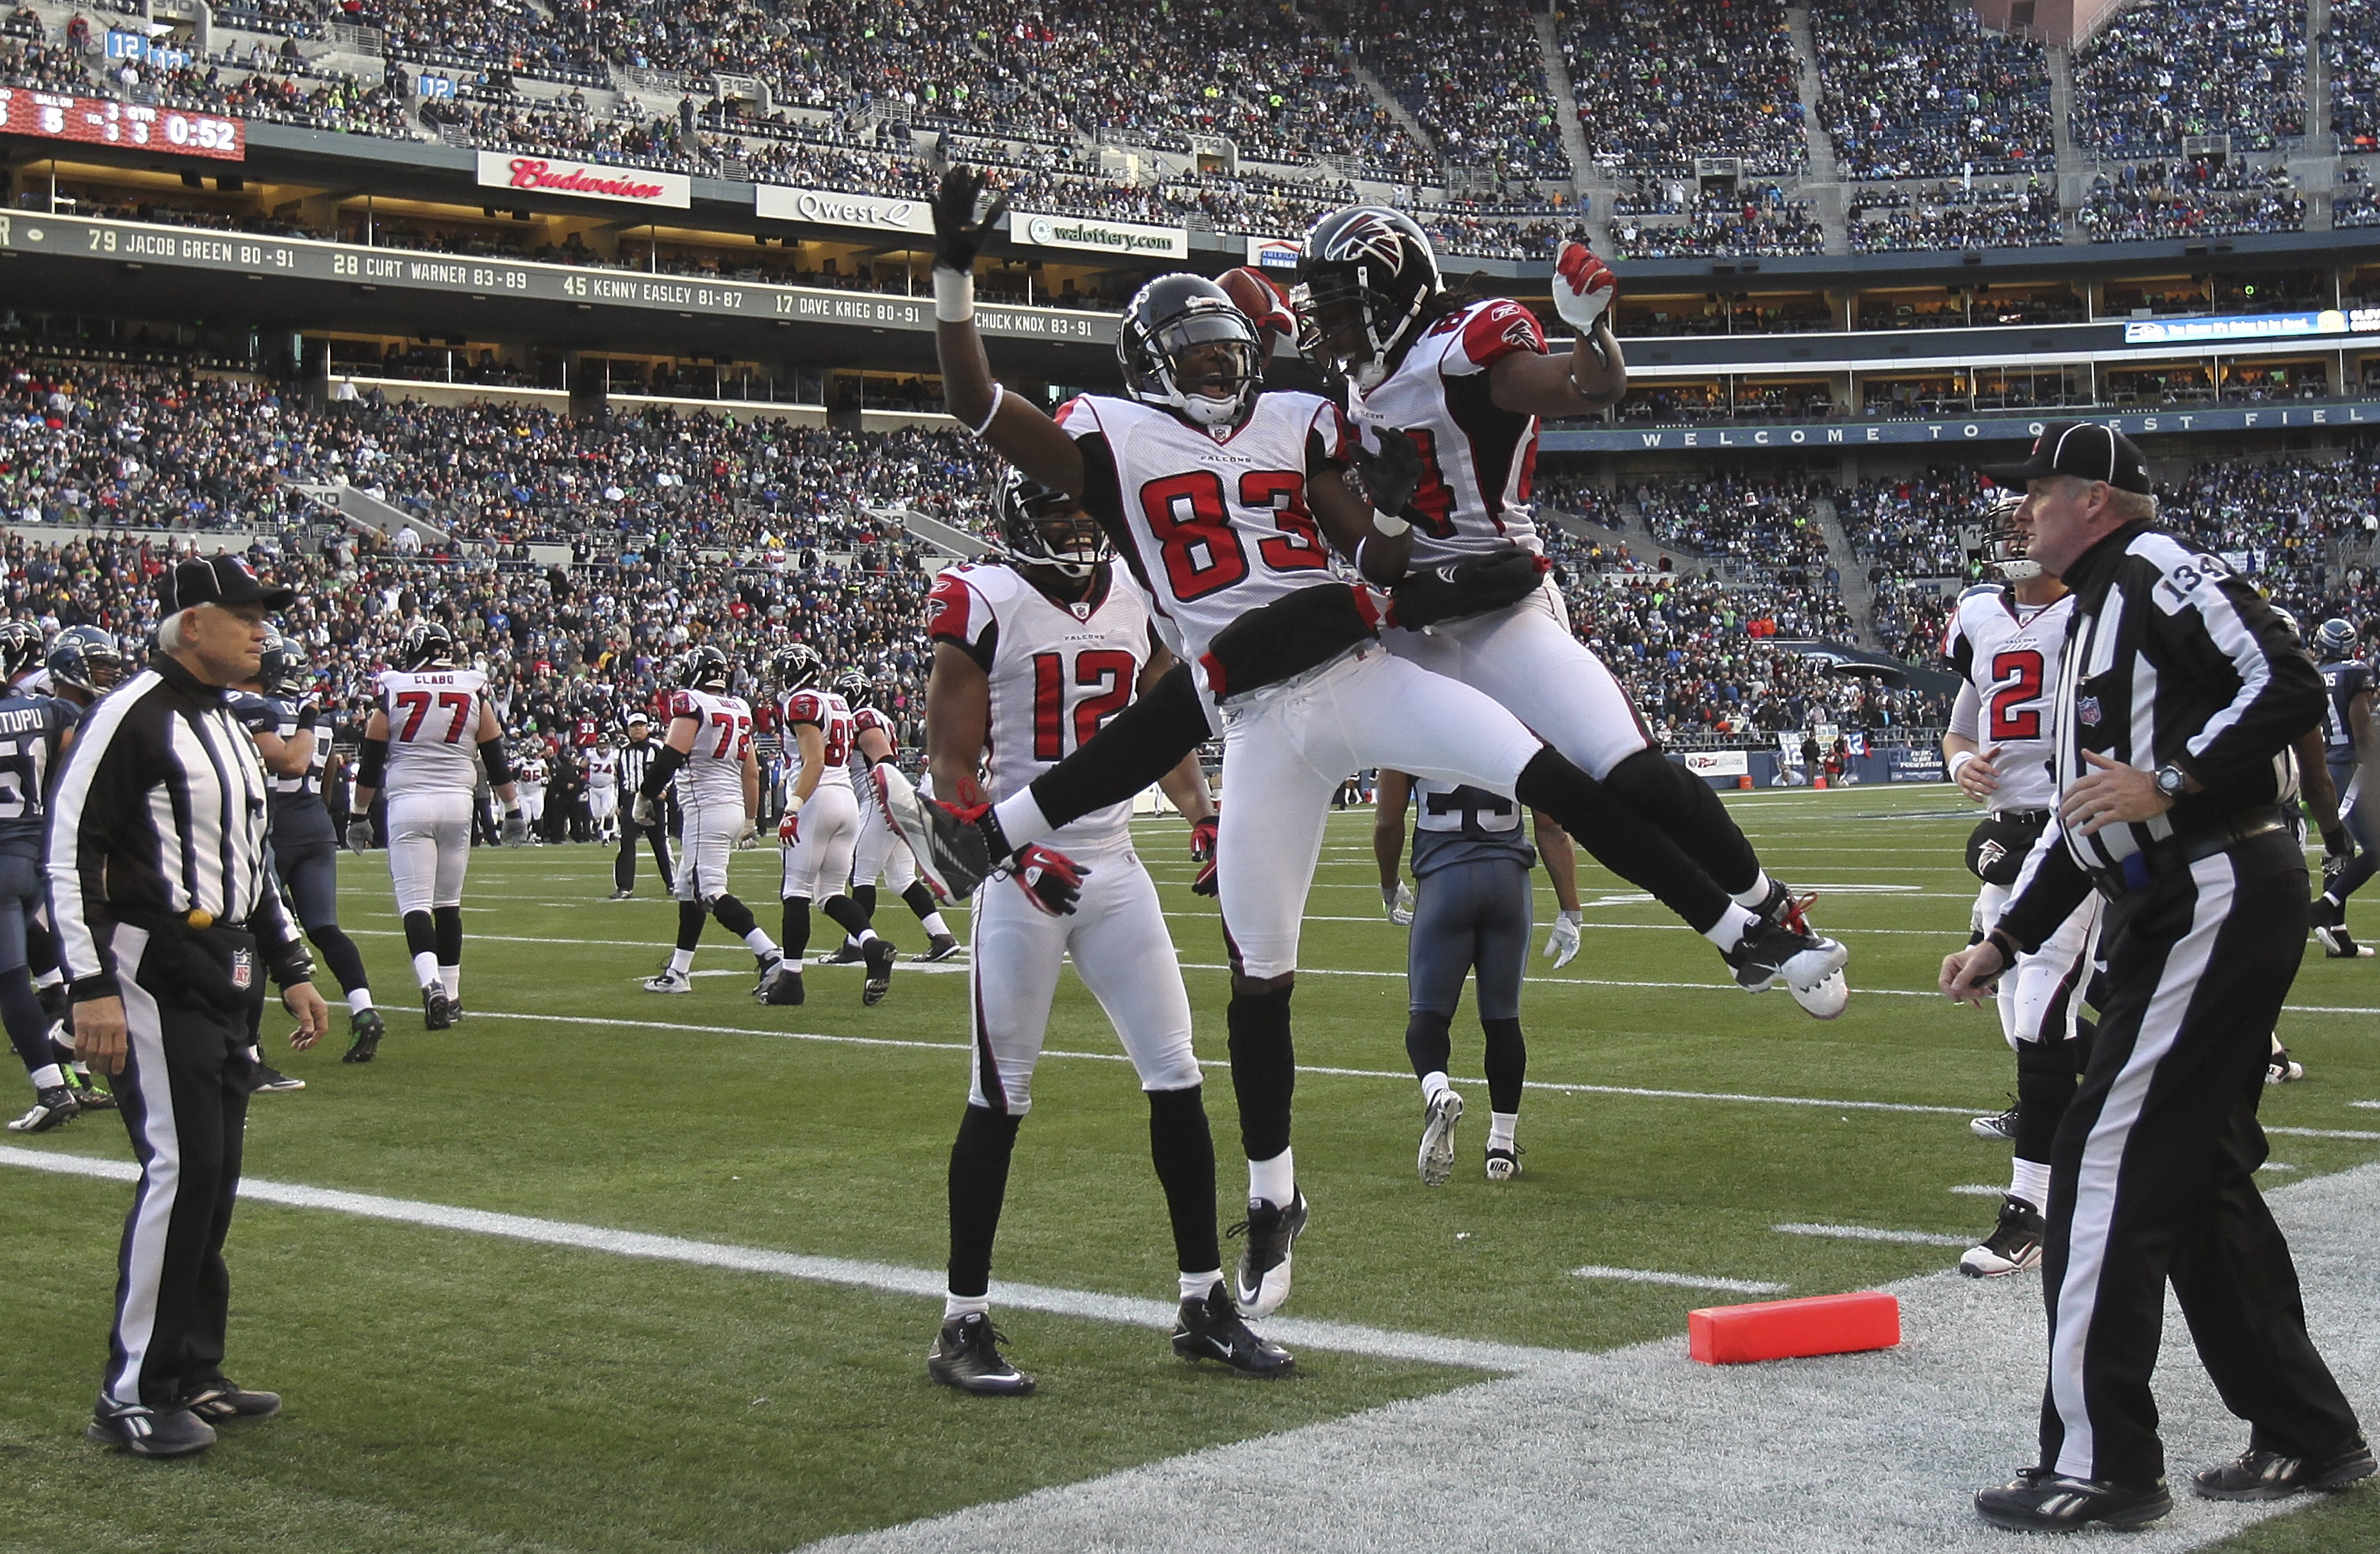 SEATTLE, WA - DECEMBER 19:  Wide receiver Roddy White #84 of the Atlanta Falcons celebrates with Harry Douglas #83 and Michael Jenkins #12 after scoring a touchdown against the Seattle Seahawks at Qwest Field on December 19, 2010 in Seattle, Washington. T